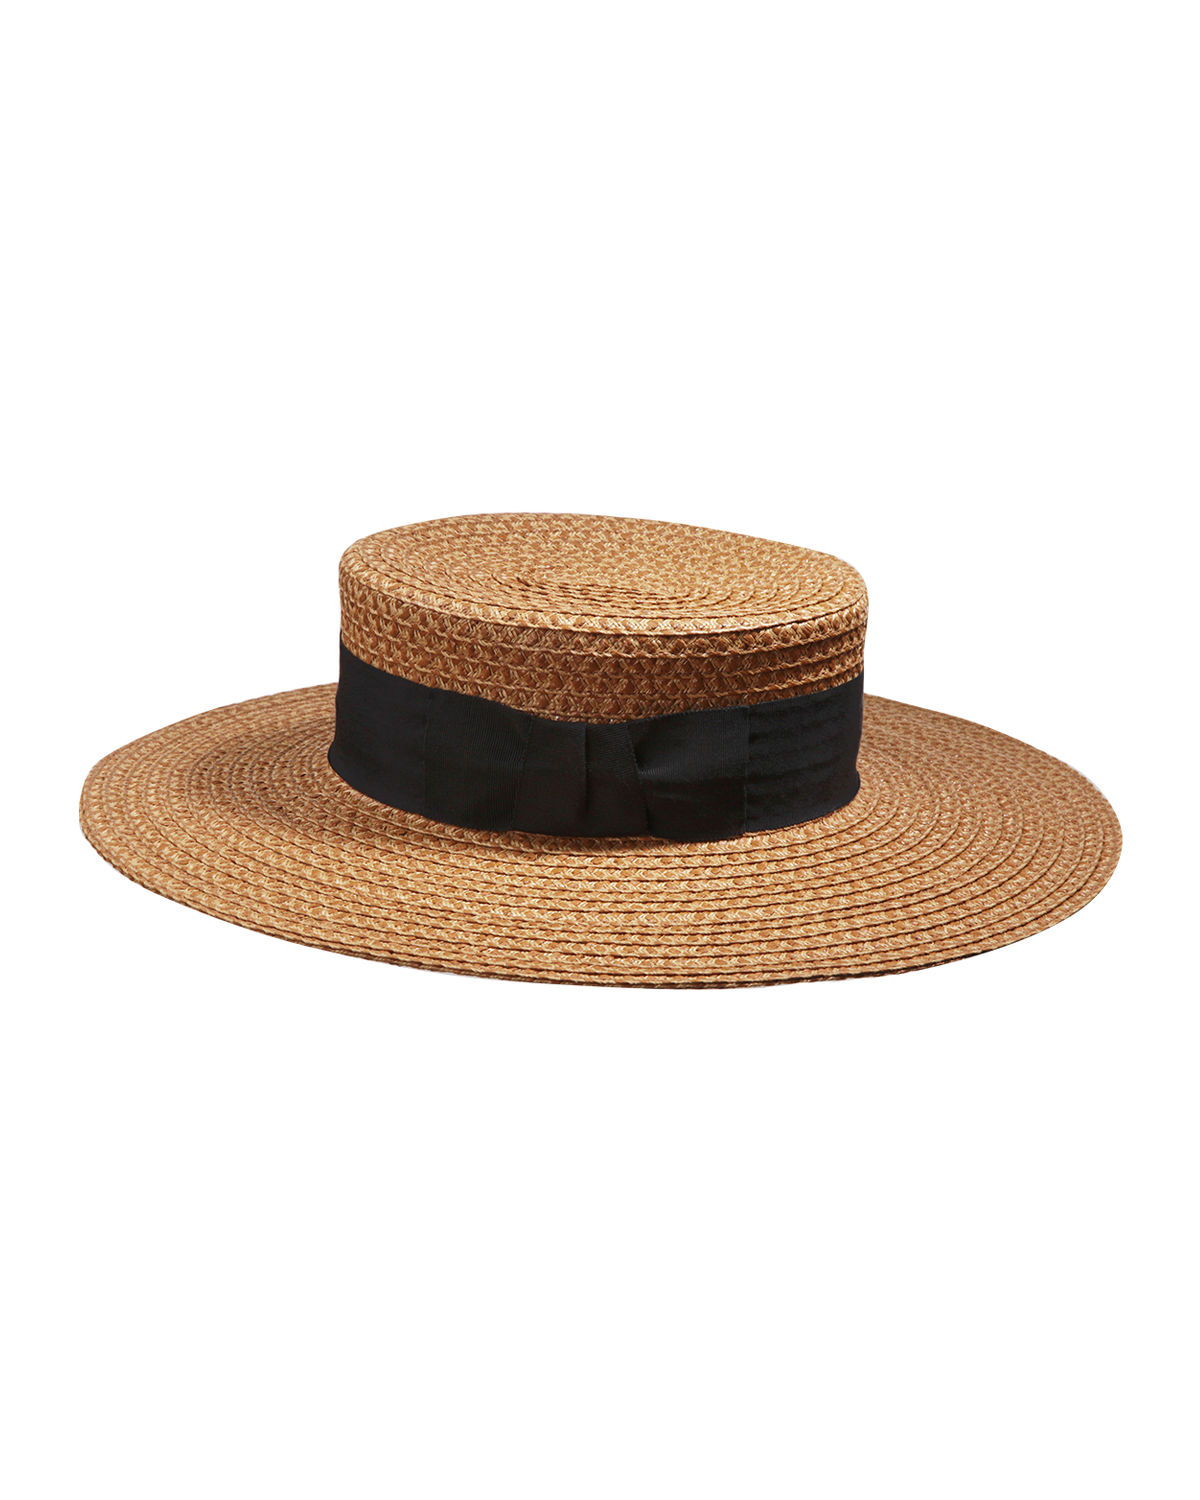 a21f60409162f Eric Javits Gondolier Woven Boater Hat